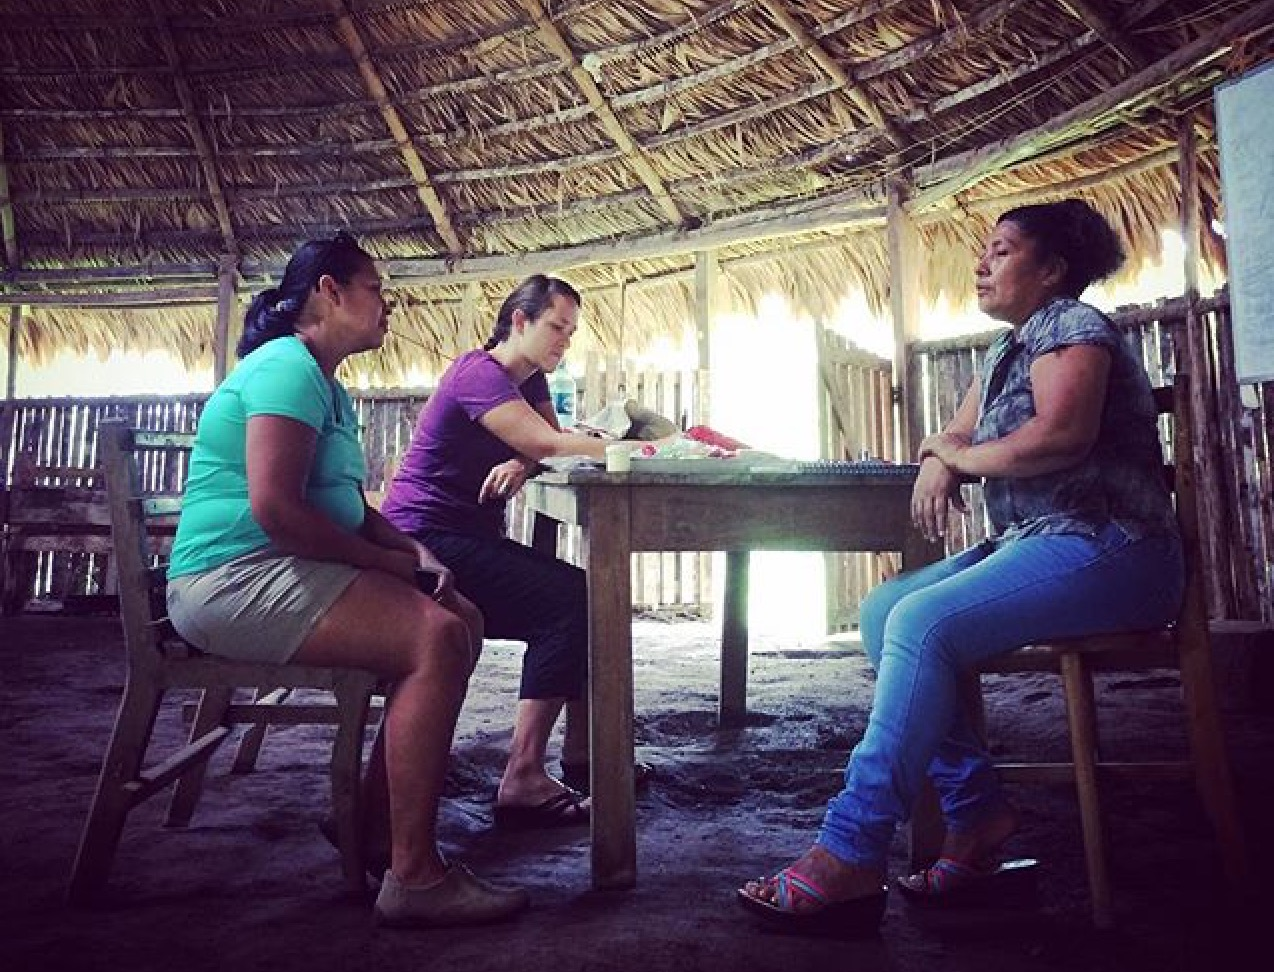 Tirza and Katie speak with Edith about the recommendations gathered at the Young Women's Institute in June 2016.